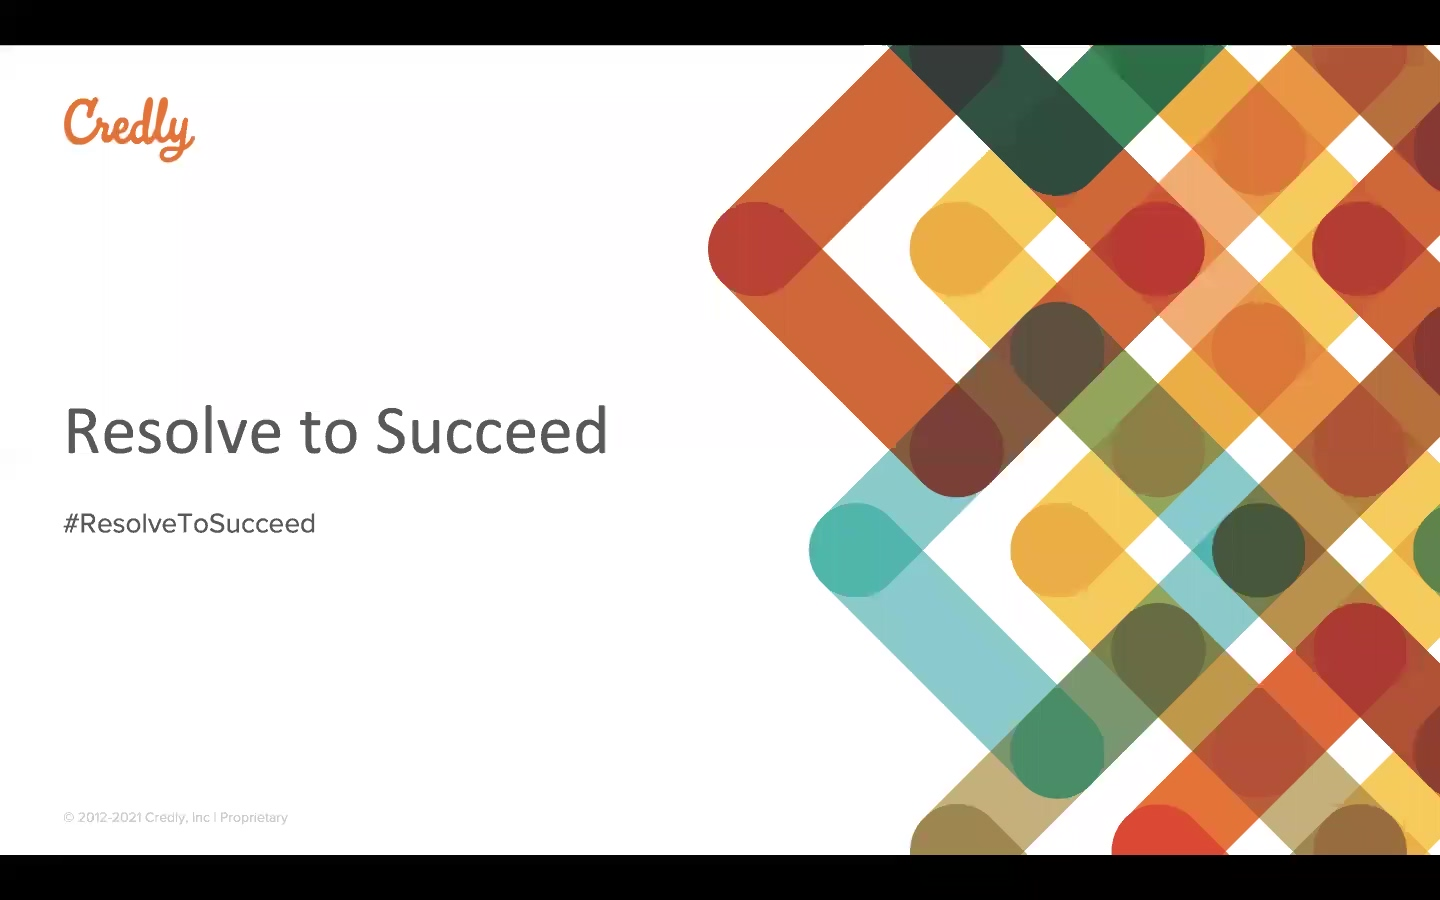 Credly_Resolve-to-Succeed_Feb21-webinar